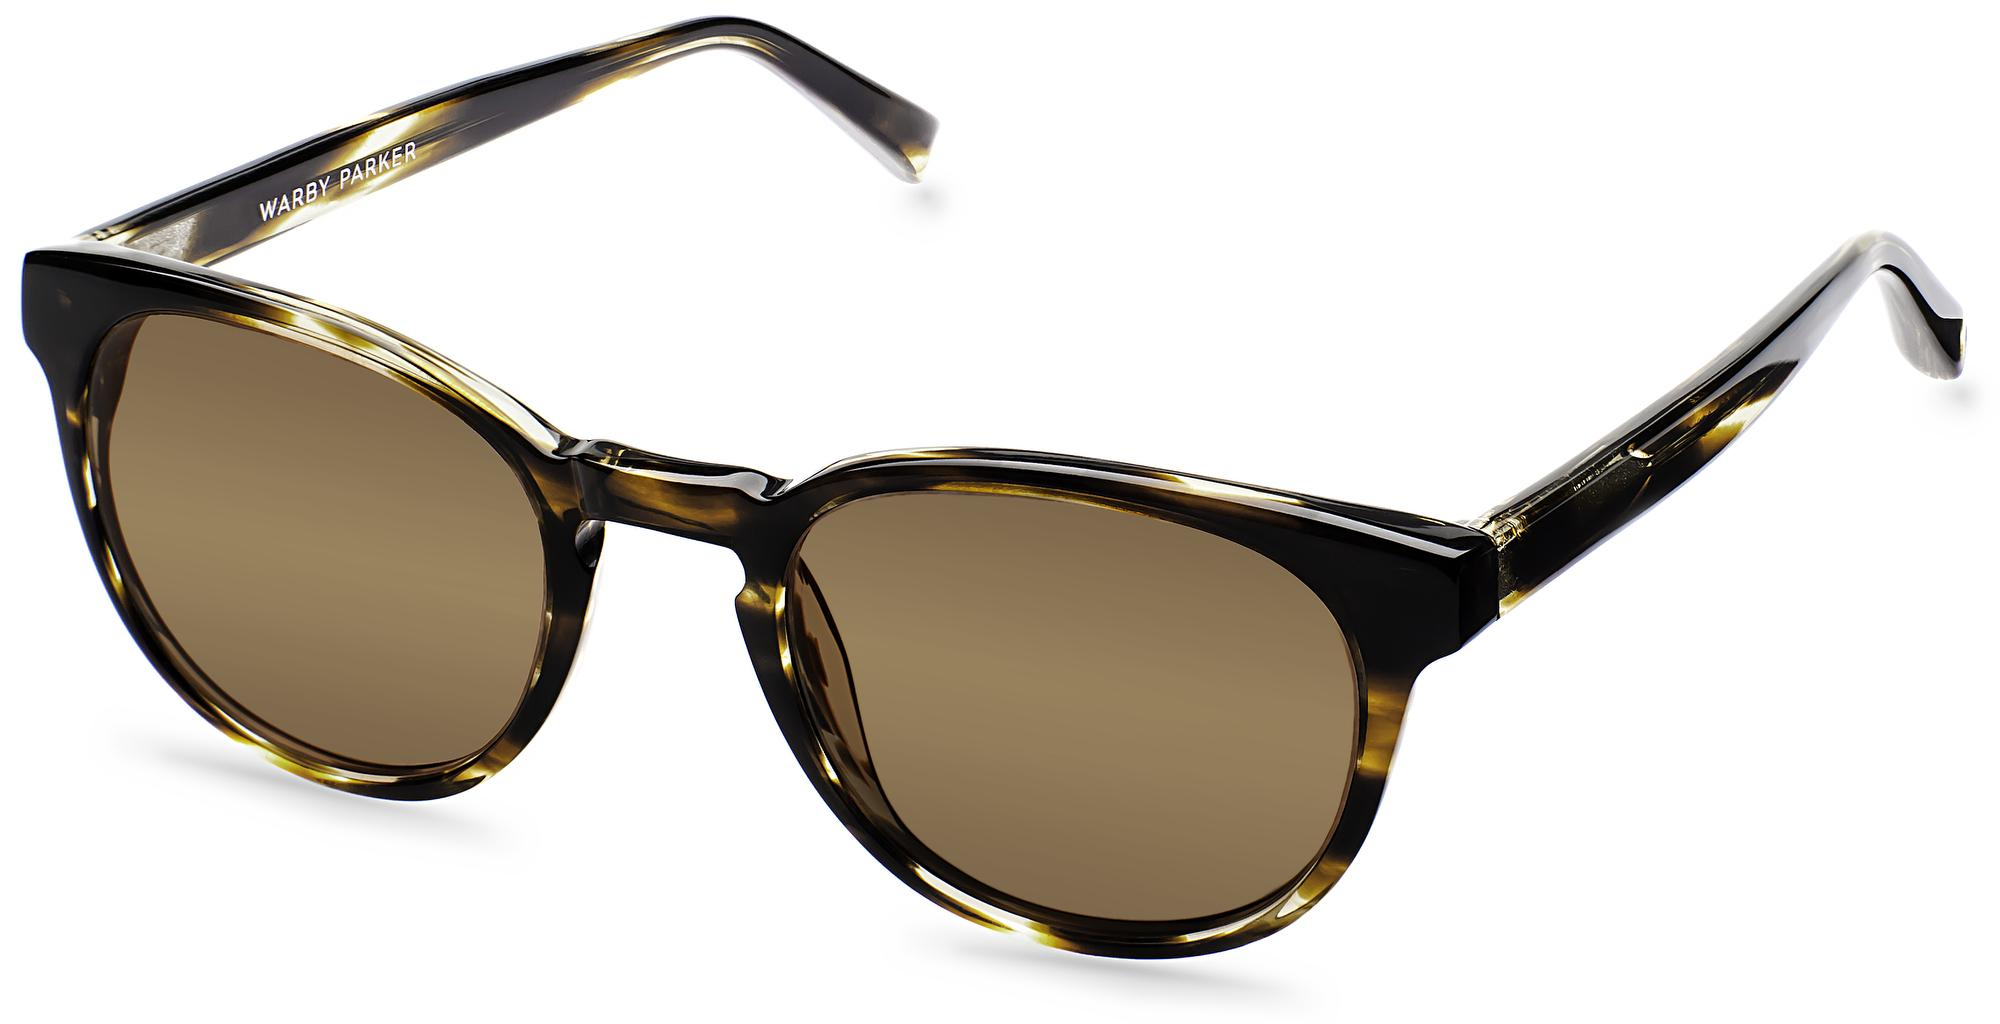 49b6fcdfa7745 ... Lyst - Warby Parker Percey in Green Warby Parker Percey Sunglasses ...